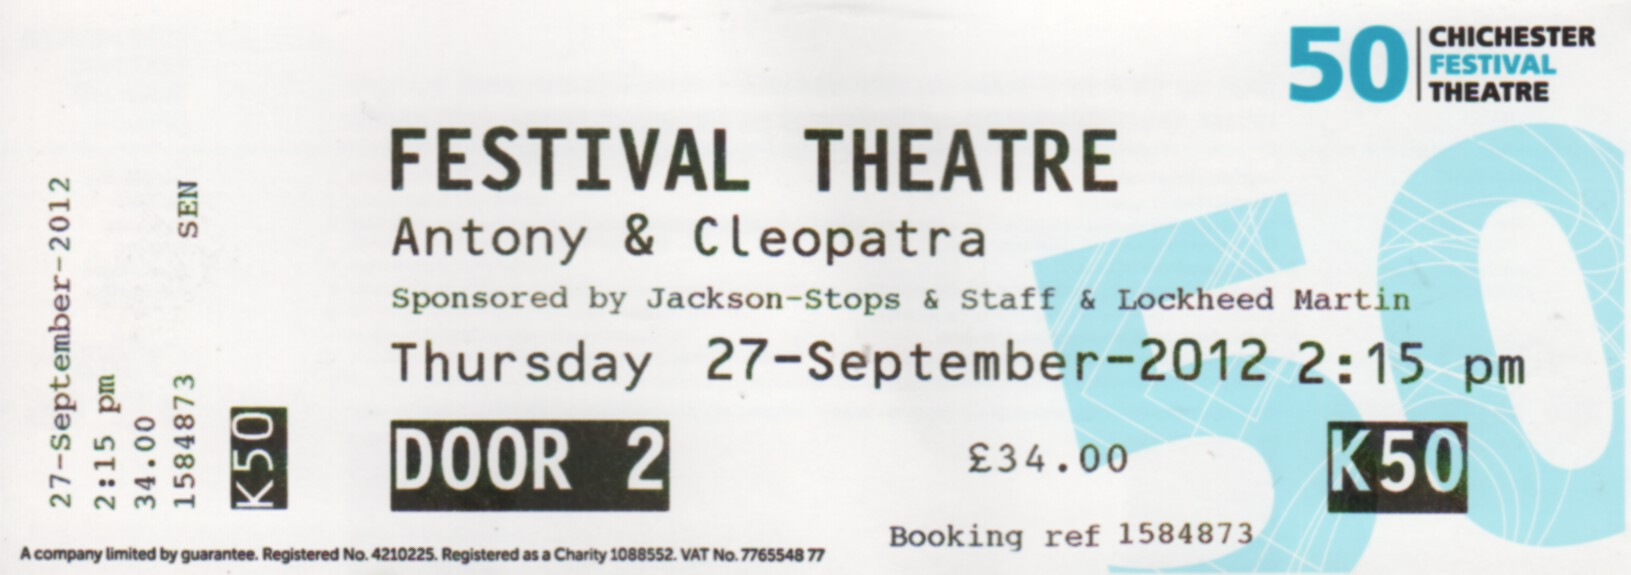 the story of the two passionate lovers in william shakespeares play anthony and cleopatra 4 out of 5 stars to antony and cleopatra, a play published in 1606 by william shakespearethis is one of my favorite shakespearean plays, partially for some of the reality on which it is based some know the full story, others know bits and pieces.